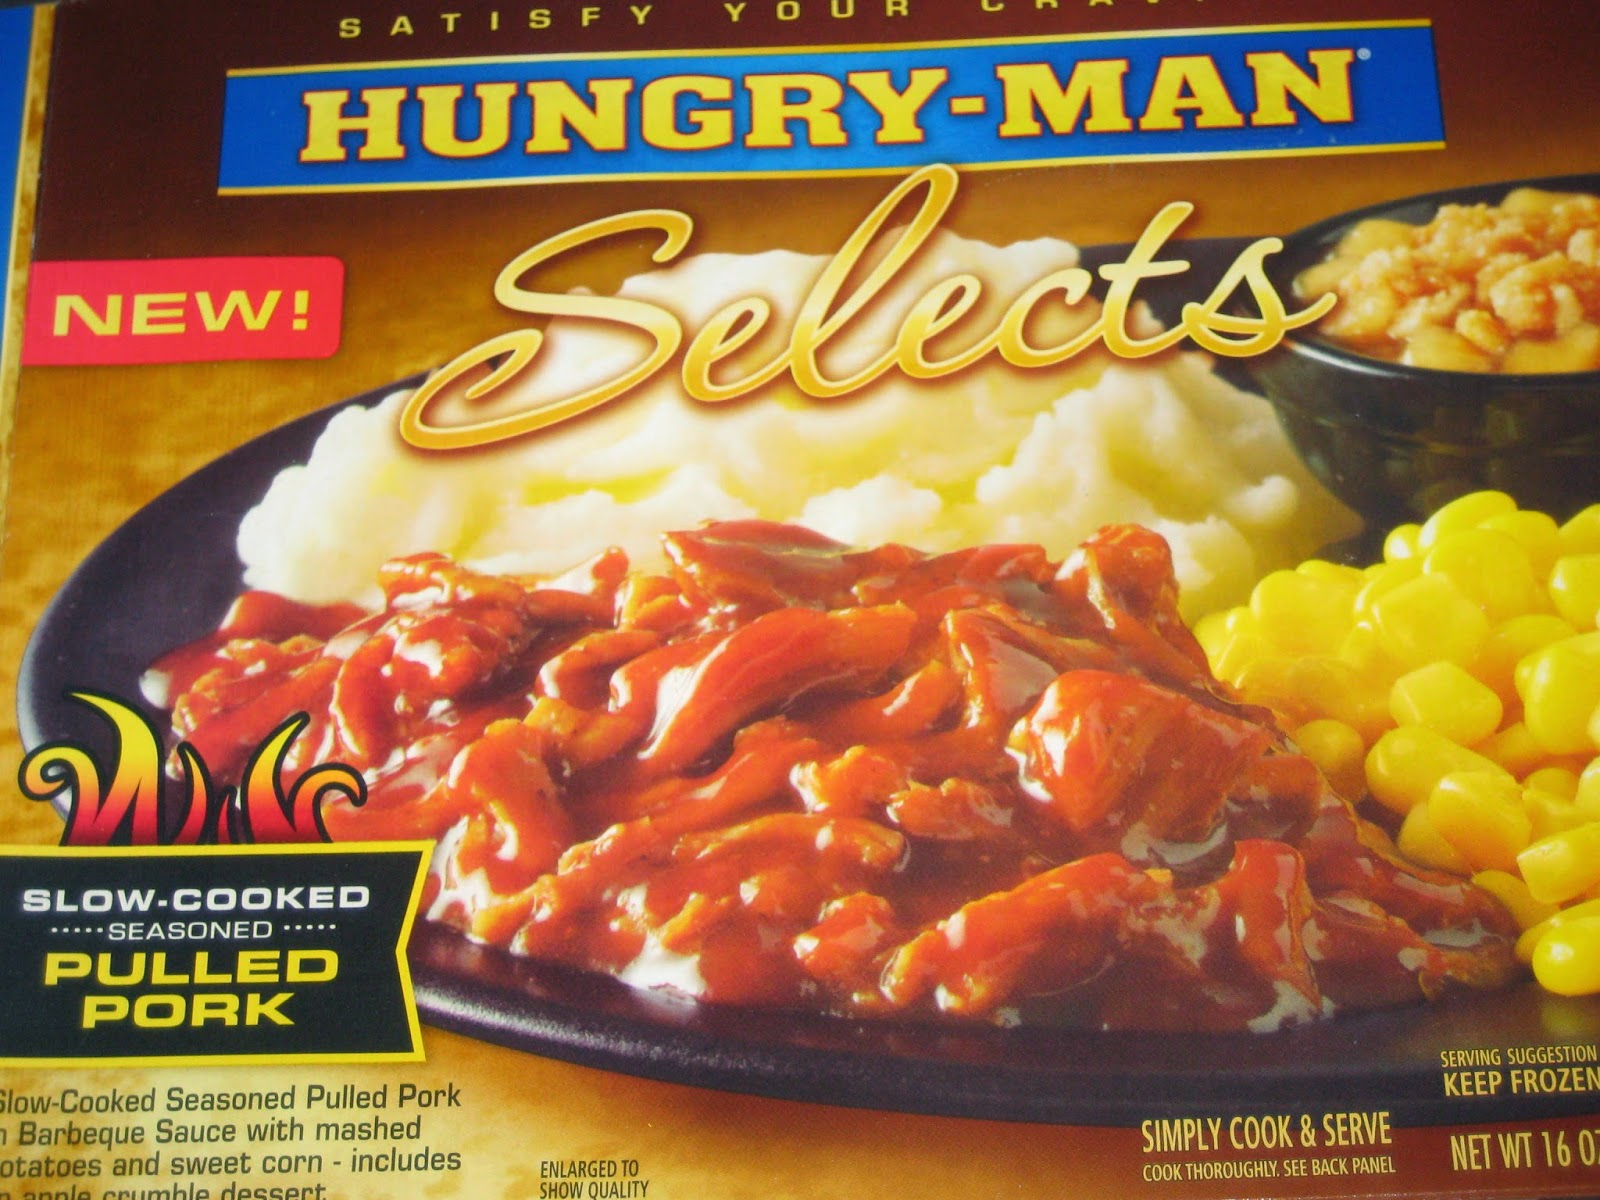 Hungry Man Has A New Dinner Pulled Pork The New Meal Features Slow Cooked Seasoned Pulled